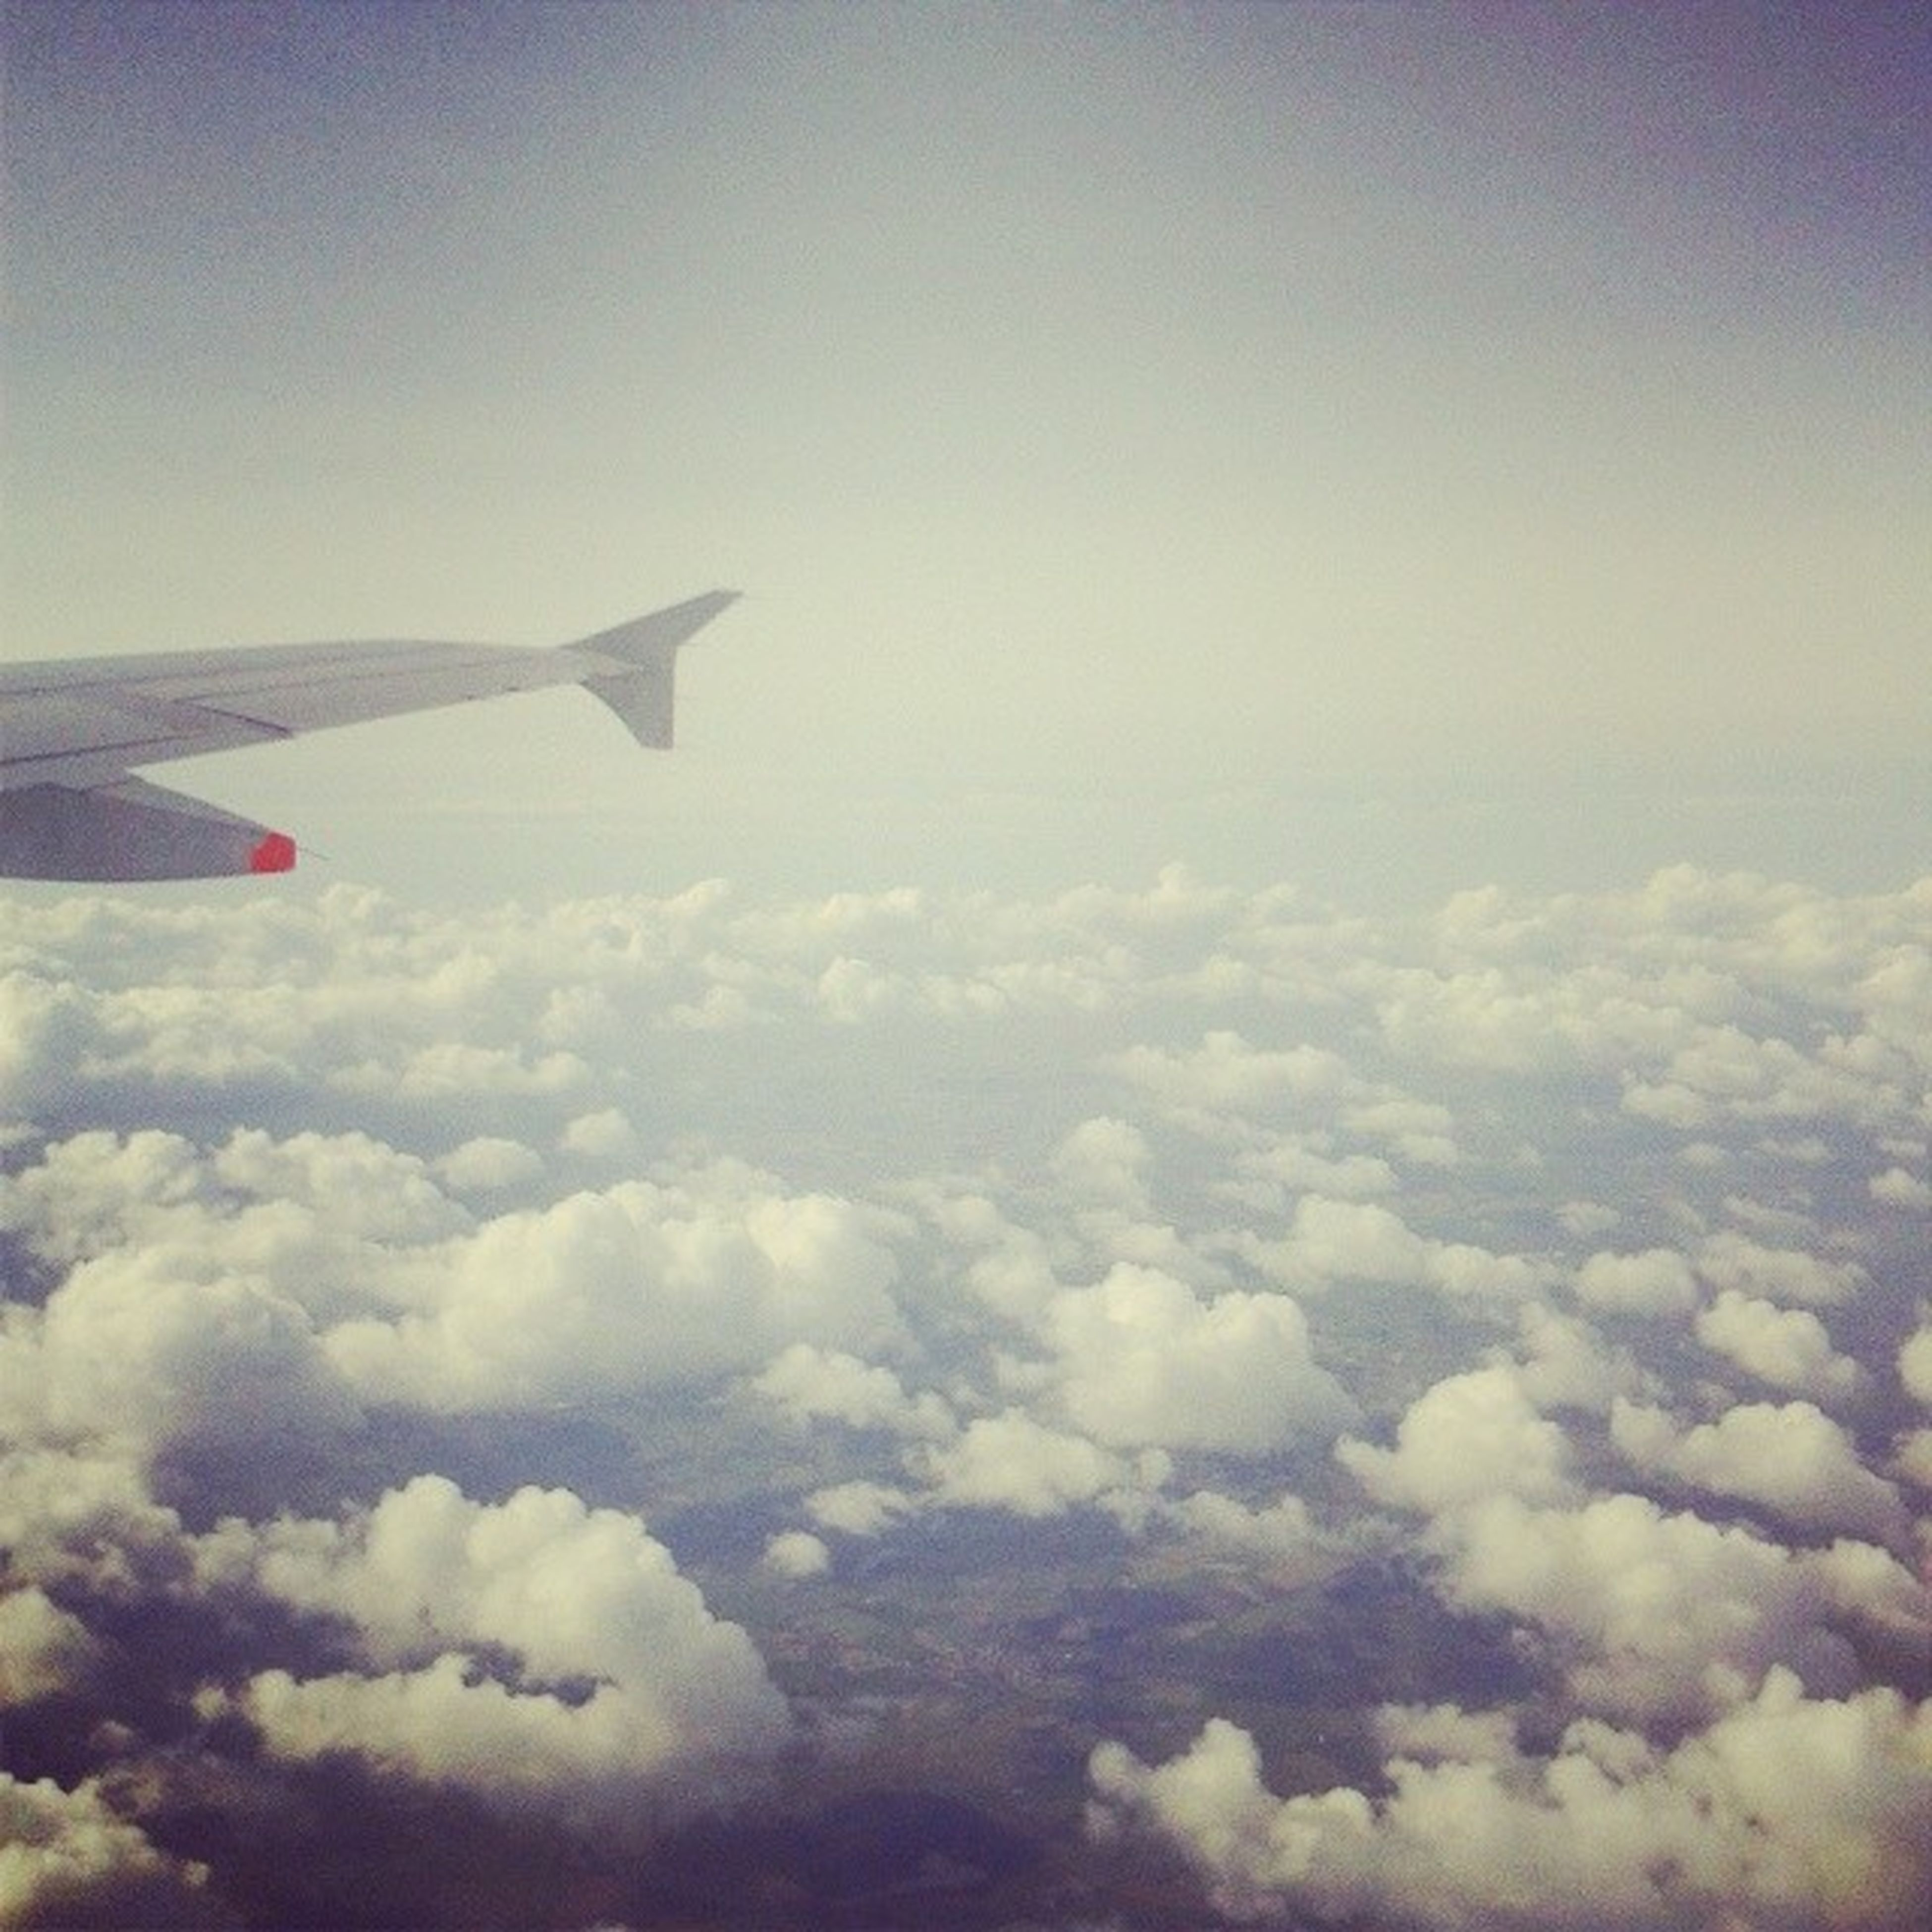 airplane, flying, air vehicle, aircraft wing, transportation, mode of transport, mid-air, sky, part of, cropped, aerial view, cloud - sky, travel, cloudscape, journey, on the move, blue, nature, beauty in nature, cloud